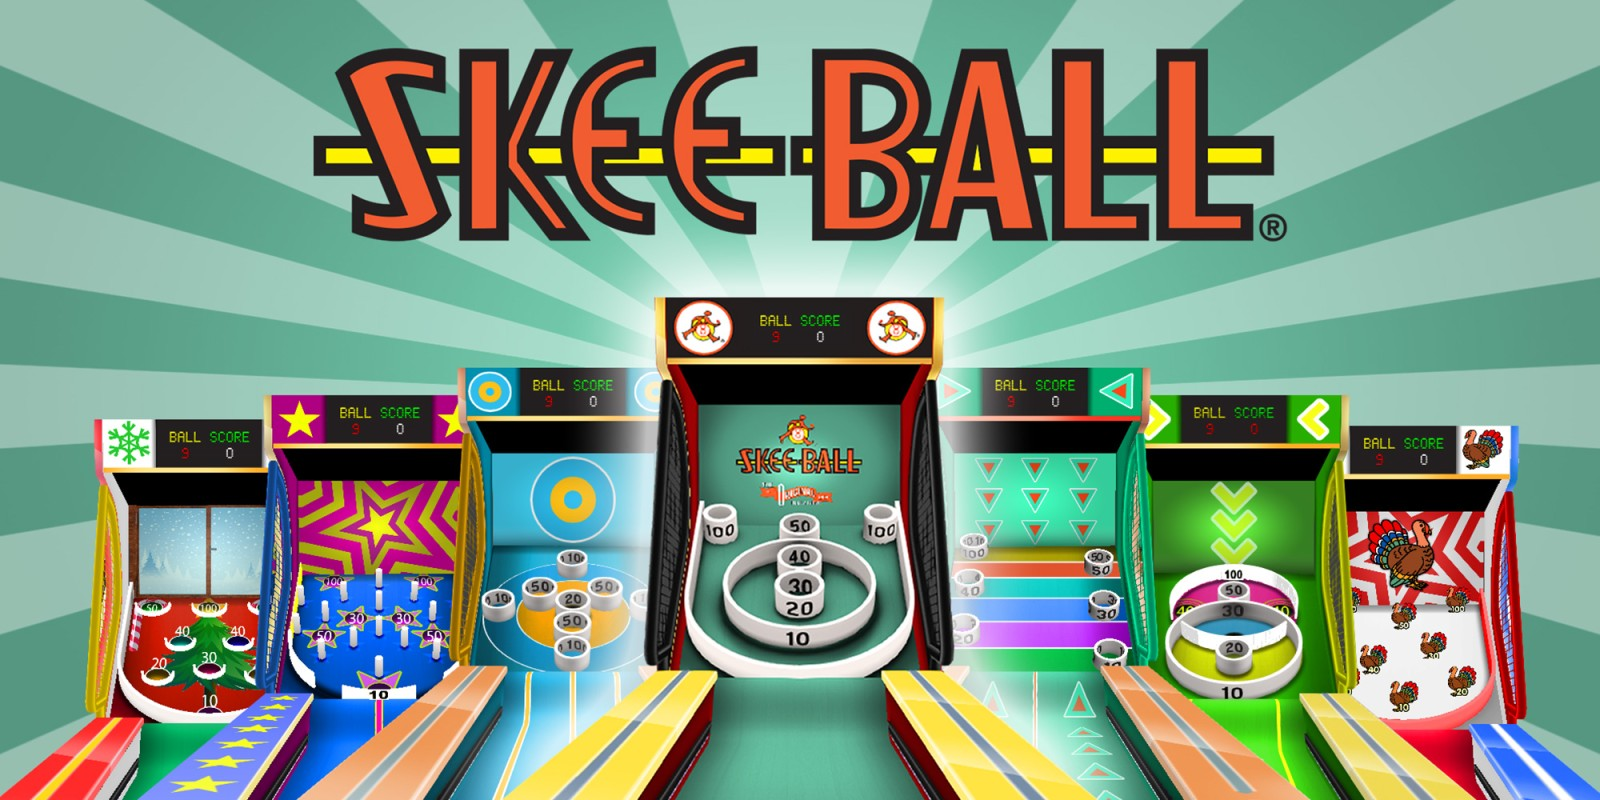 Skee-Ball Feature